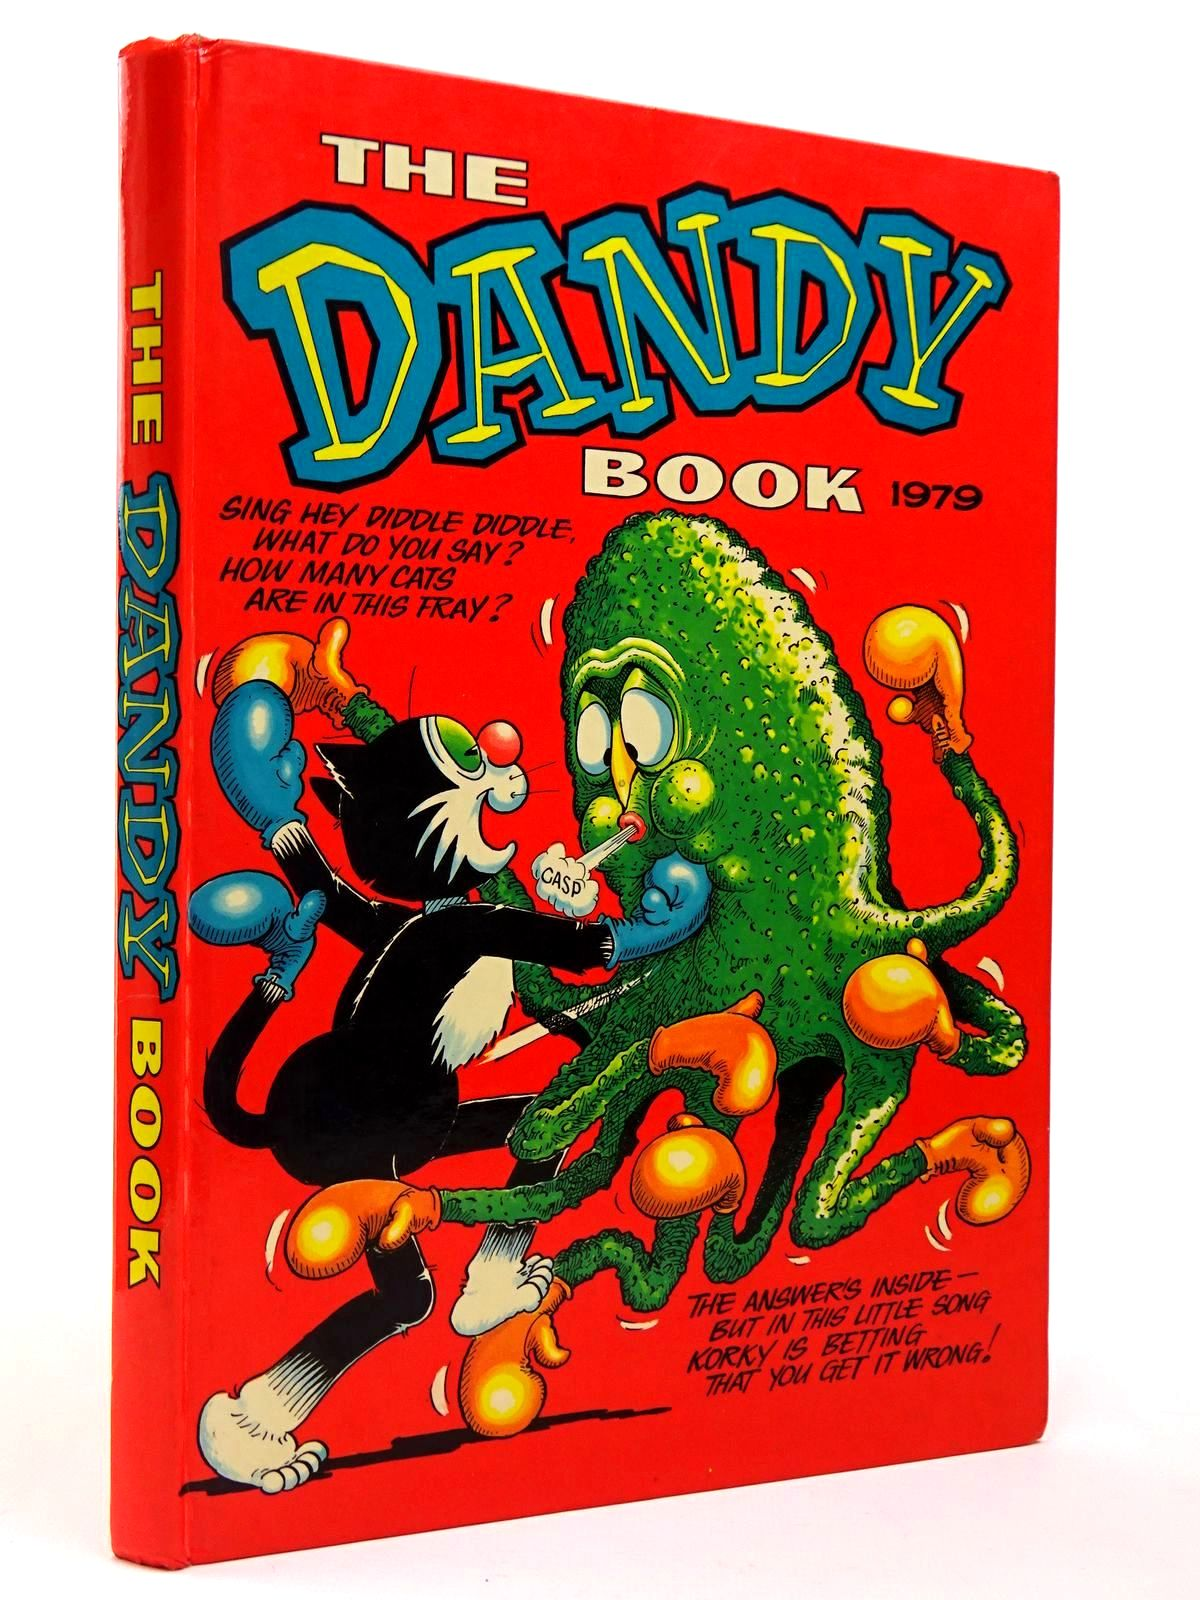 Photo of THE DANDY BOOK 1979 published by D.C. Thomson & Co Ltd. (STOCK CODE: 2129724)  for sale by Stella & Rose's Books